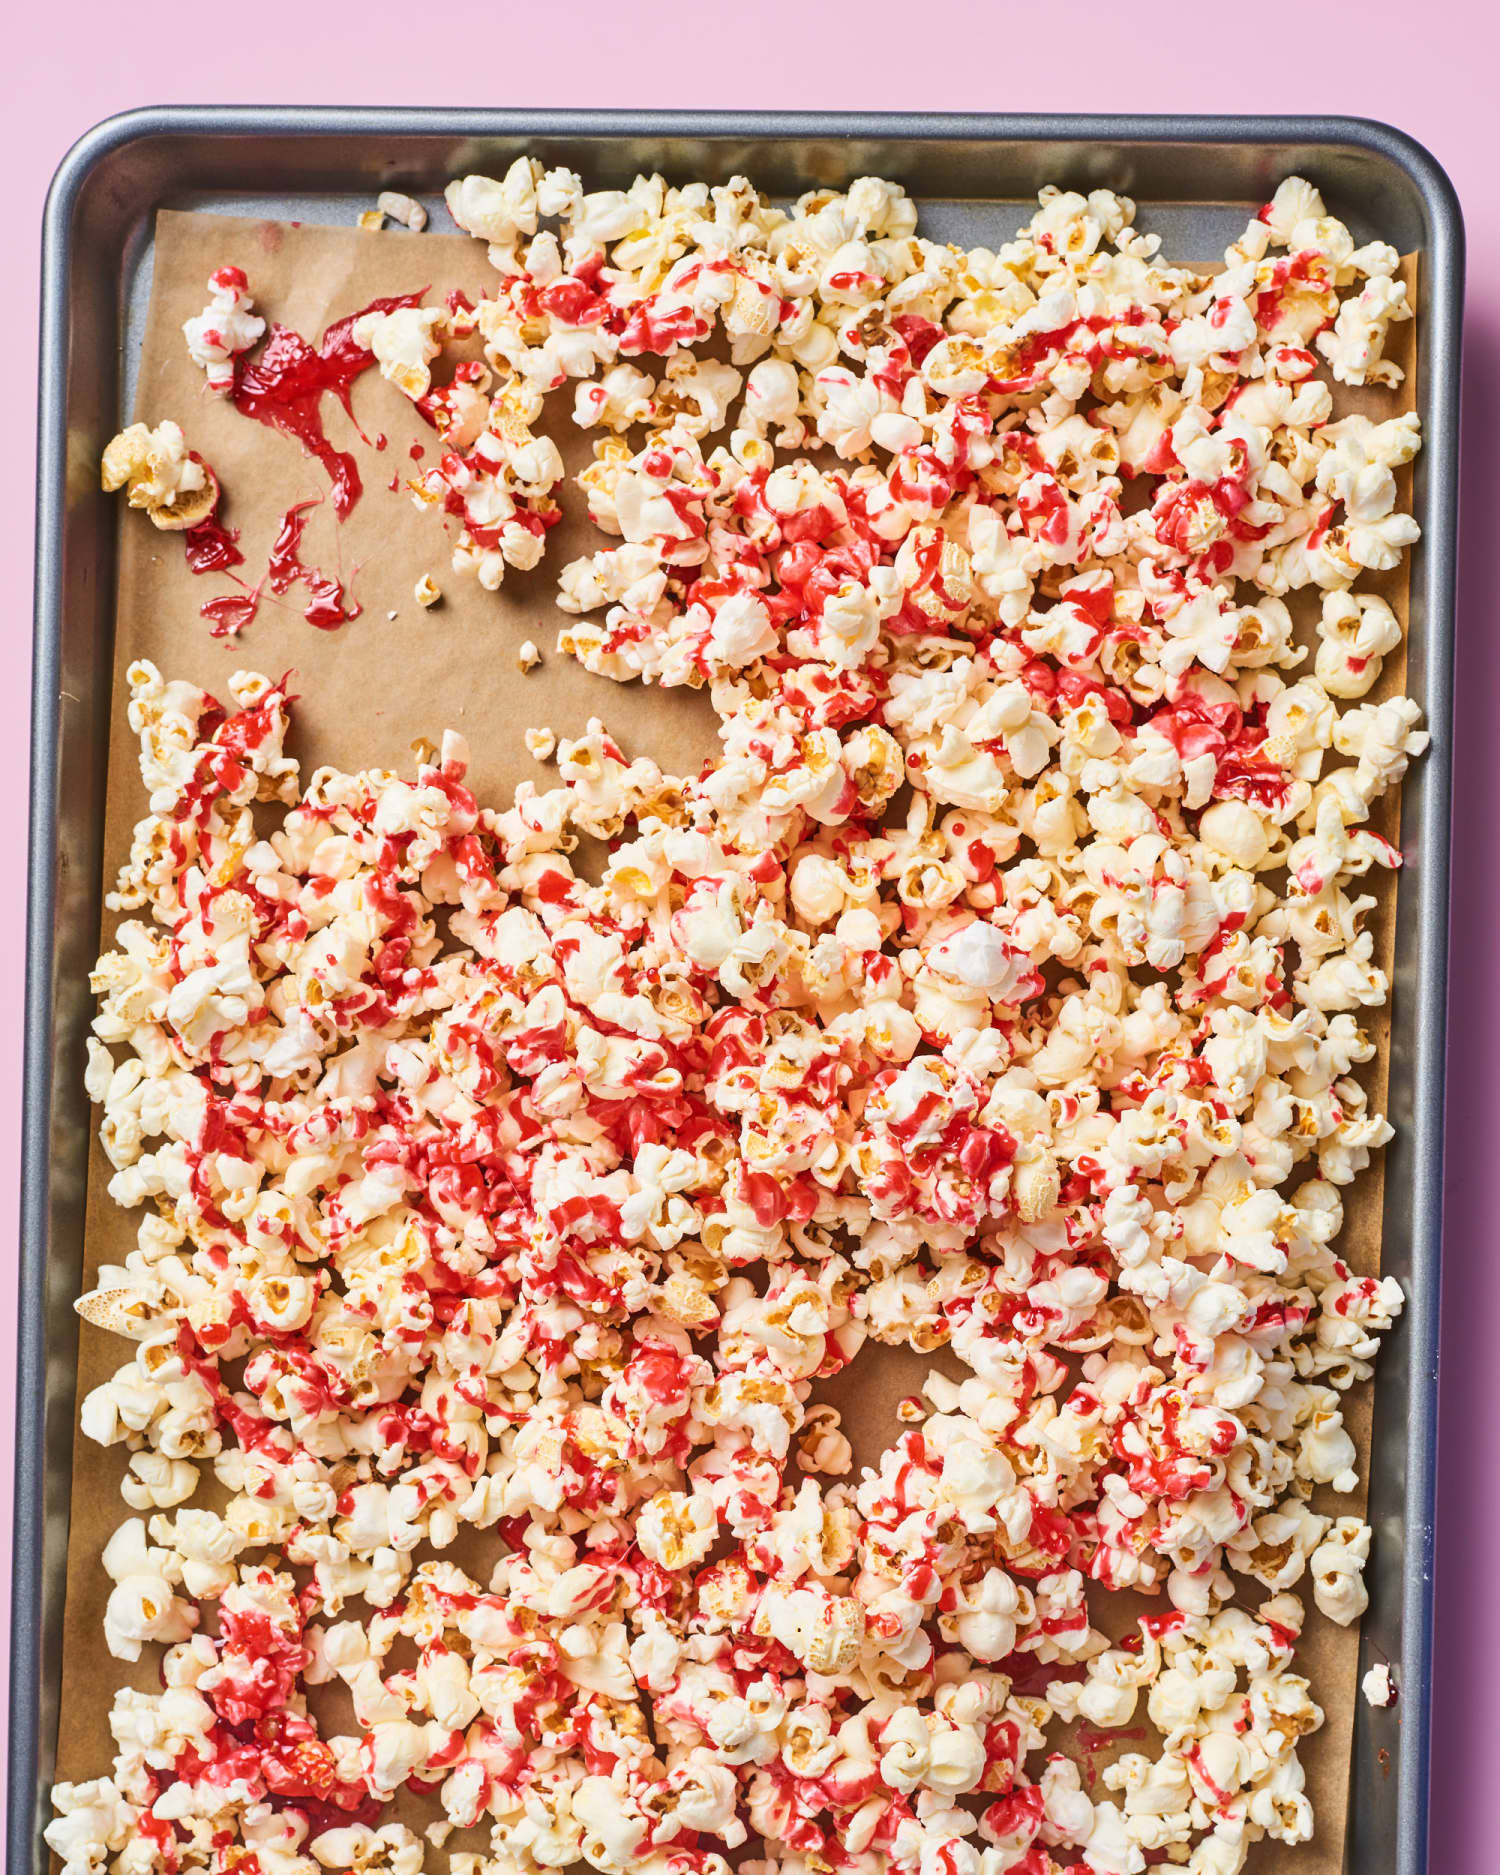 Fiery Kettle Corn Is the Only Reason Red Hots Exist